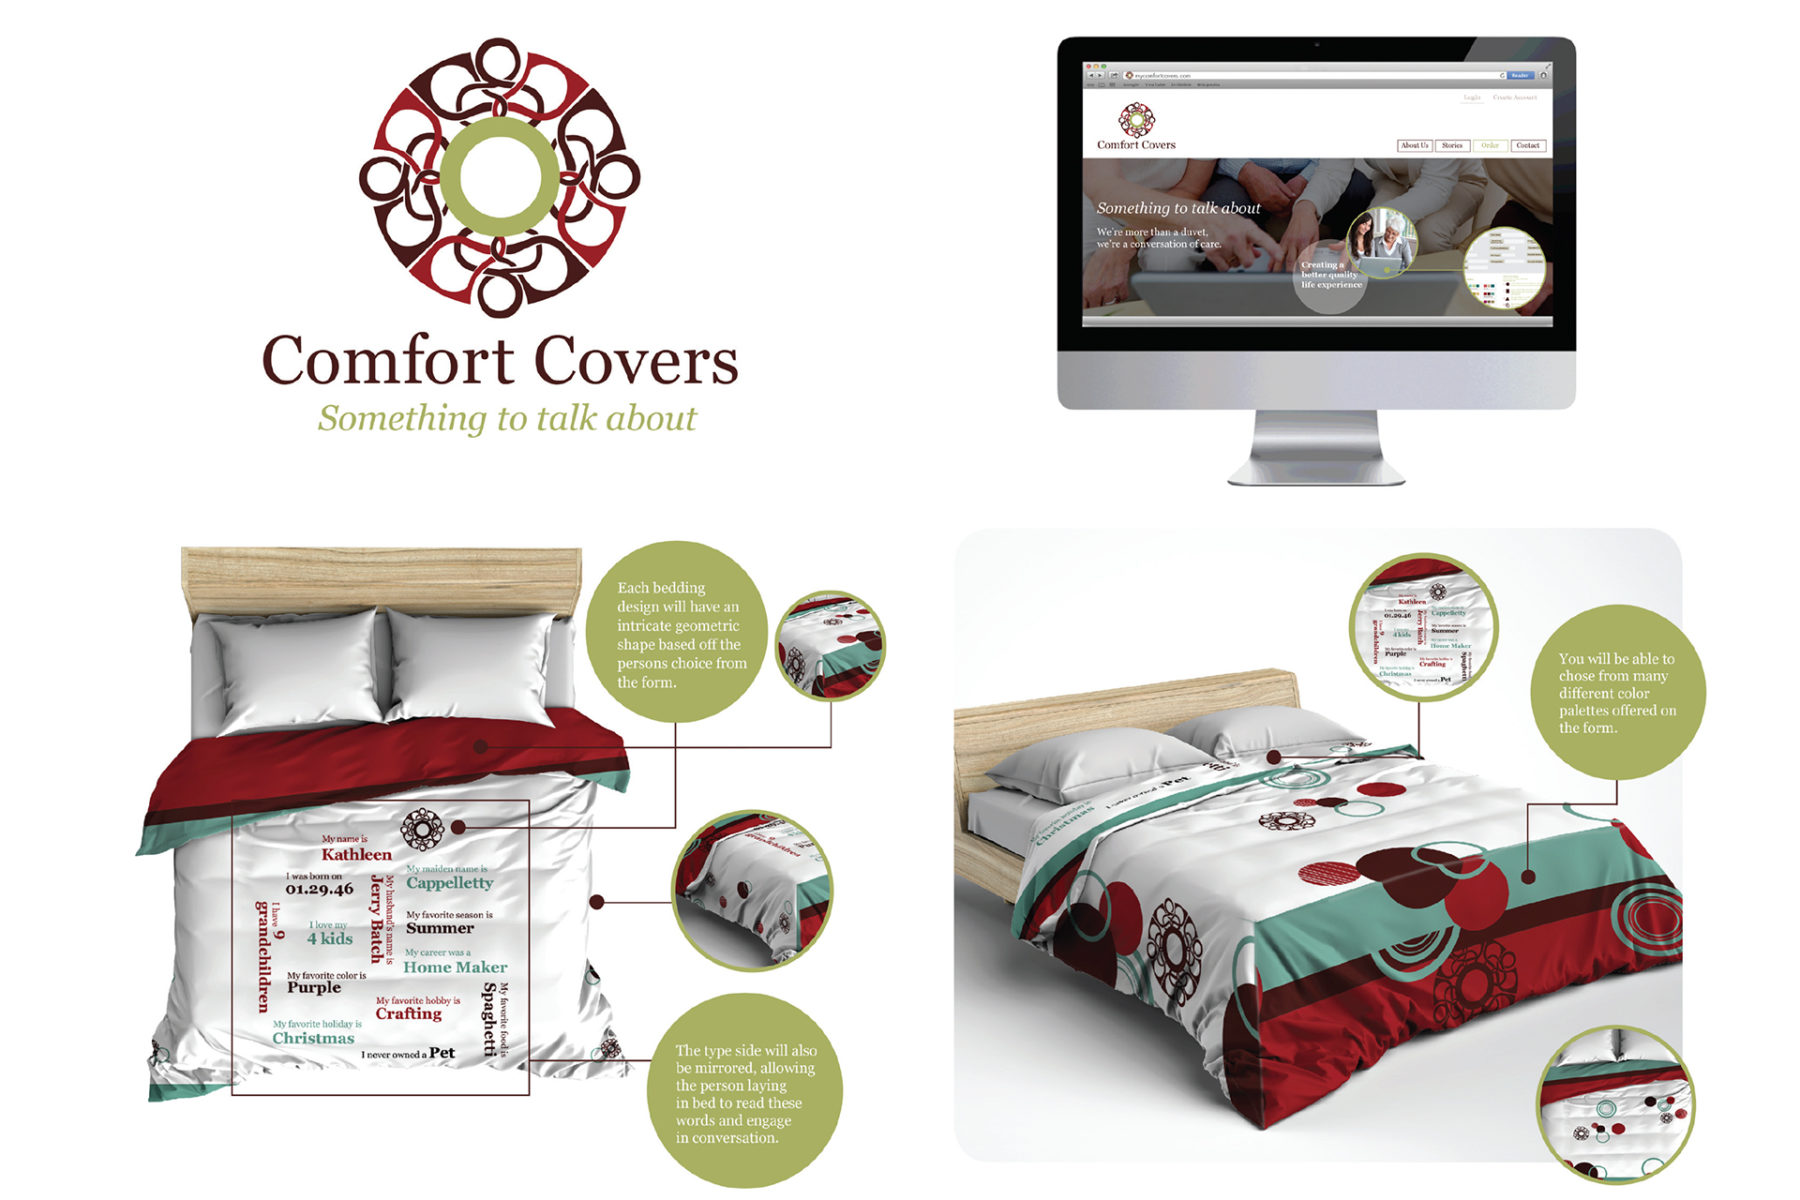 Comfort Covers